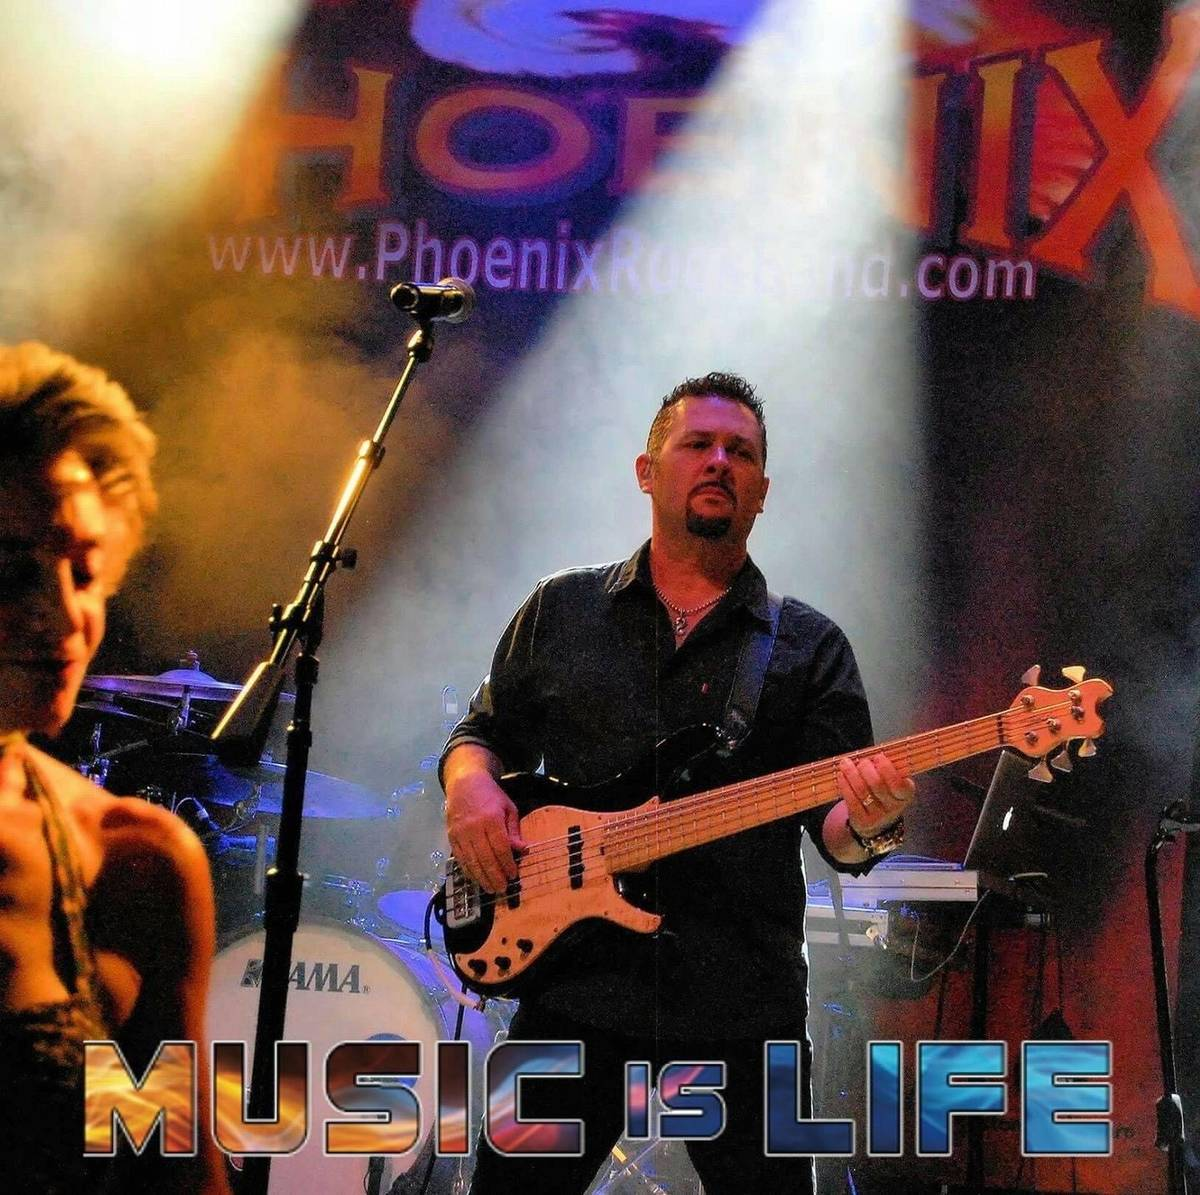 Ray Allaire, shown here with the rock-cover band Phoenix, has left Las Vegas for a village in B ...